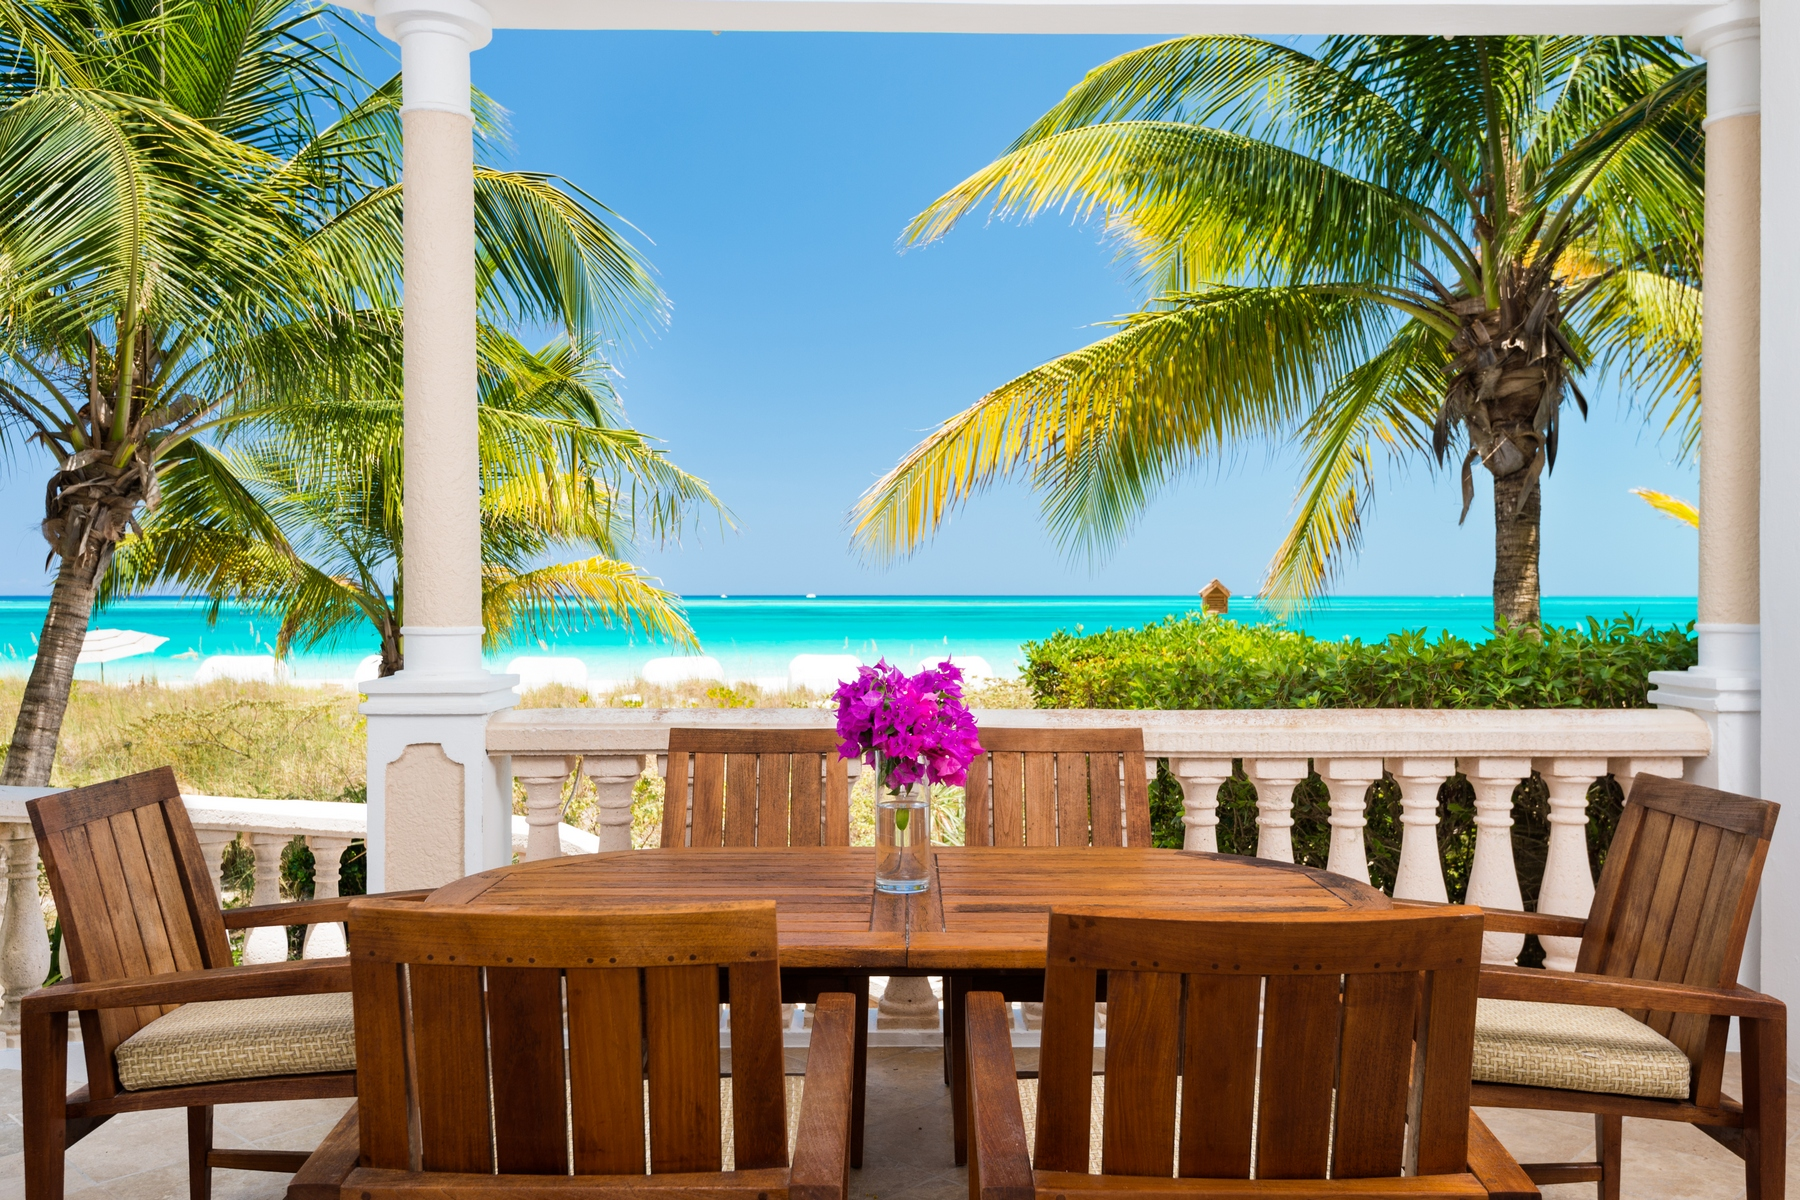 Condominium for Sale at Point Grace Suite E102 Oceanfront Grace Bay, Providenciales TCI BWI Turks And Caicos Islands